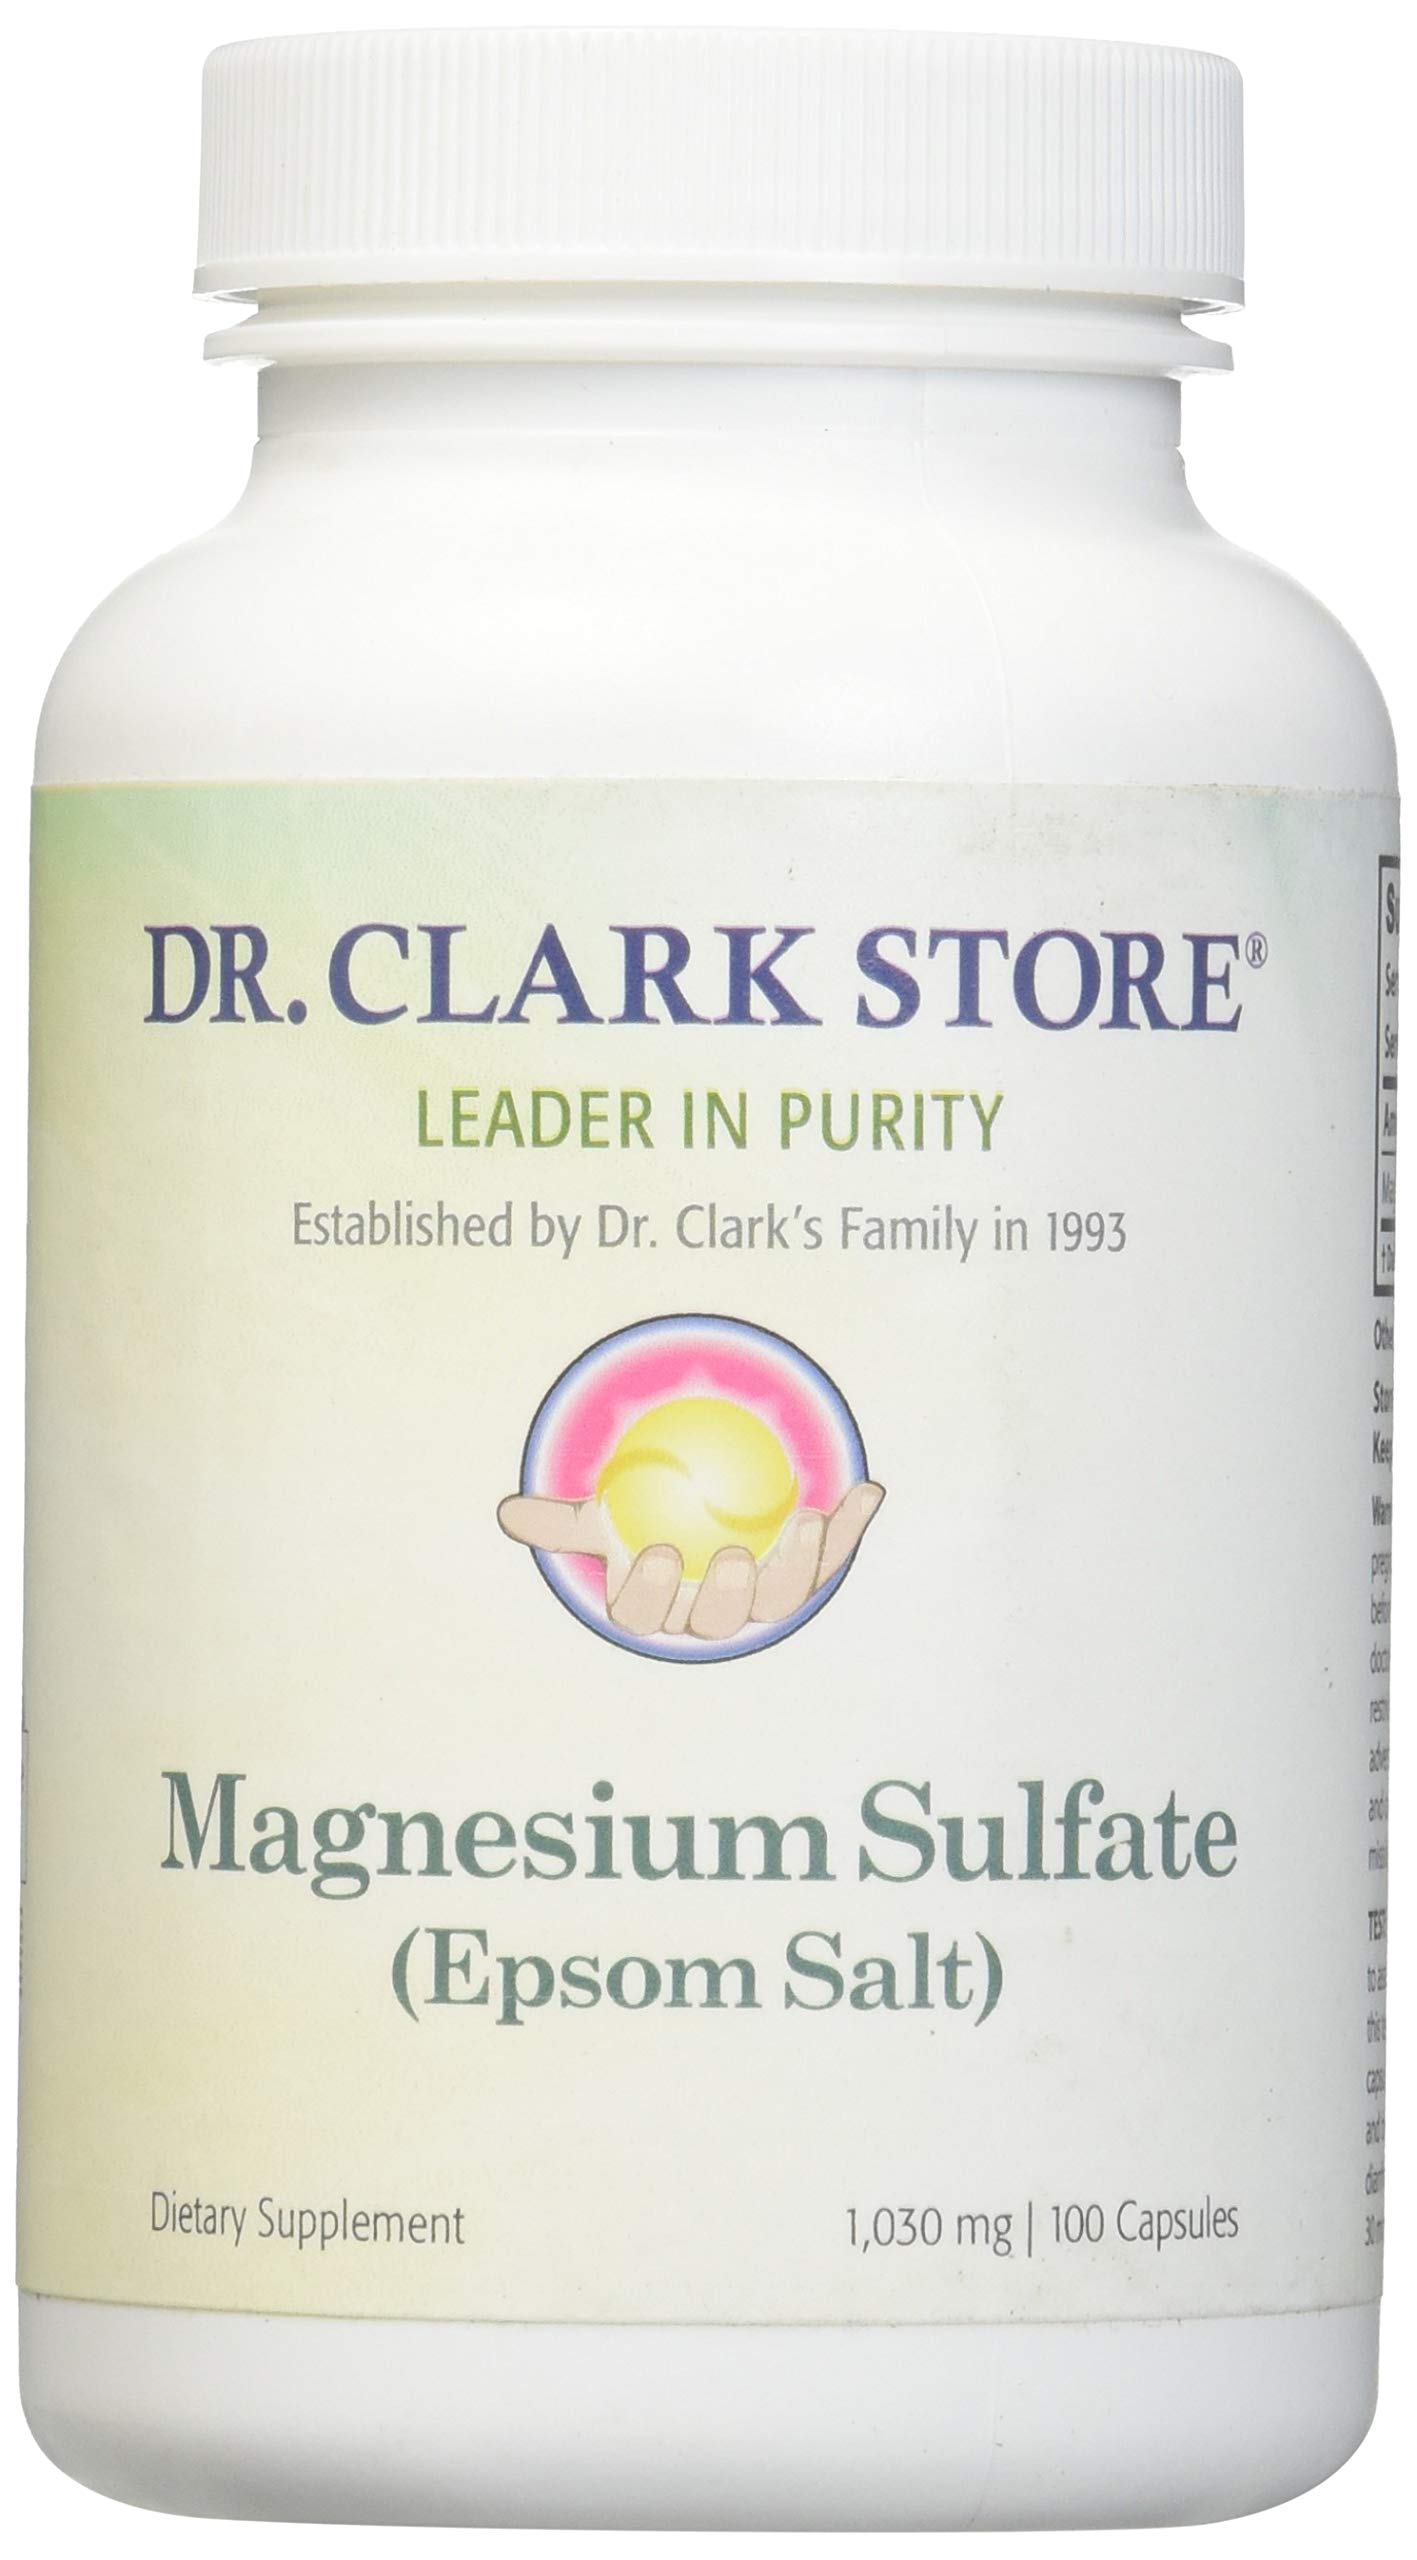 Magnesium Sulfate USP (Epsom Salts), Constipation Relief, 1030mg, 100 capsules